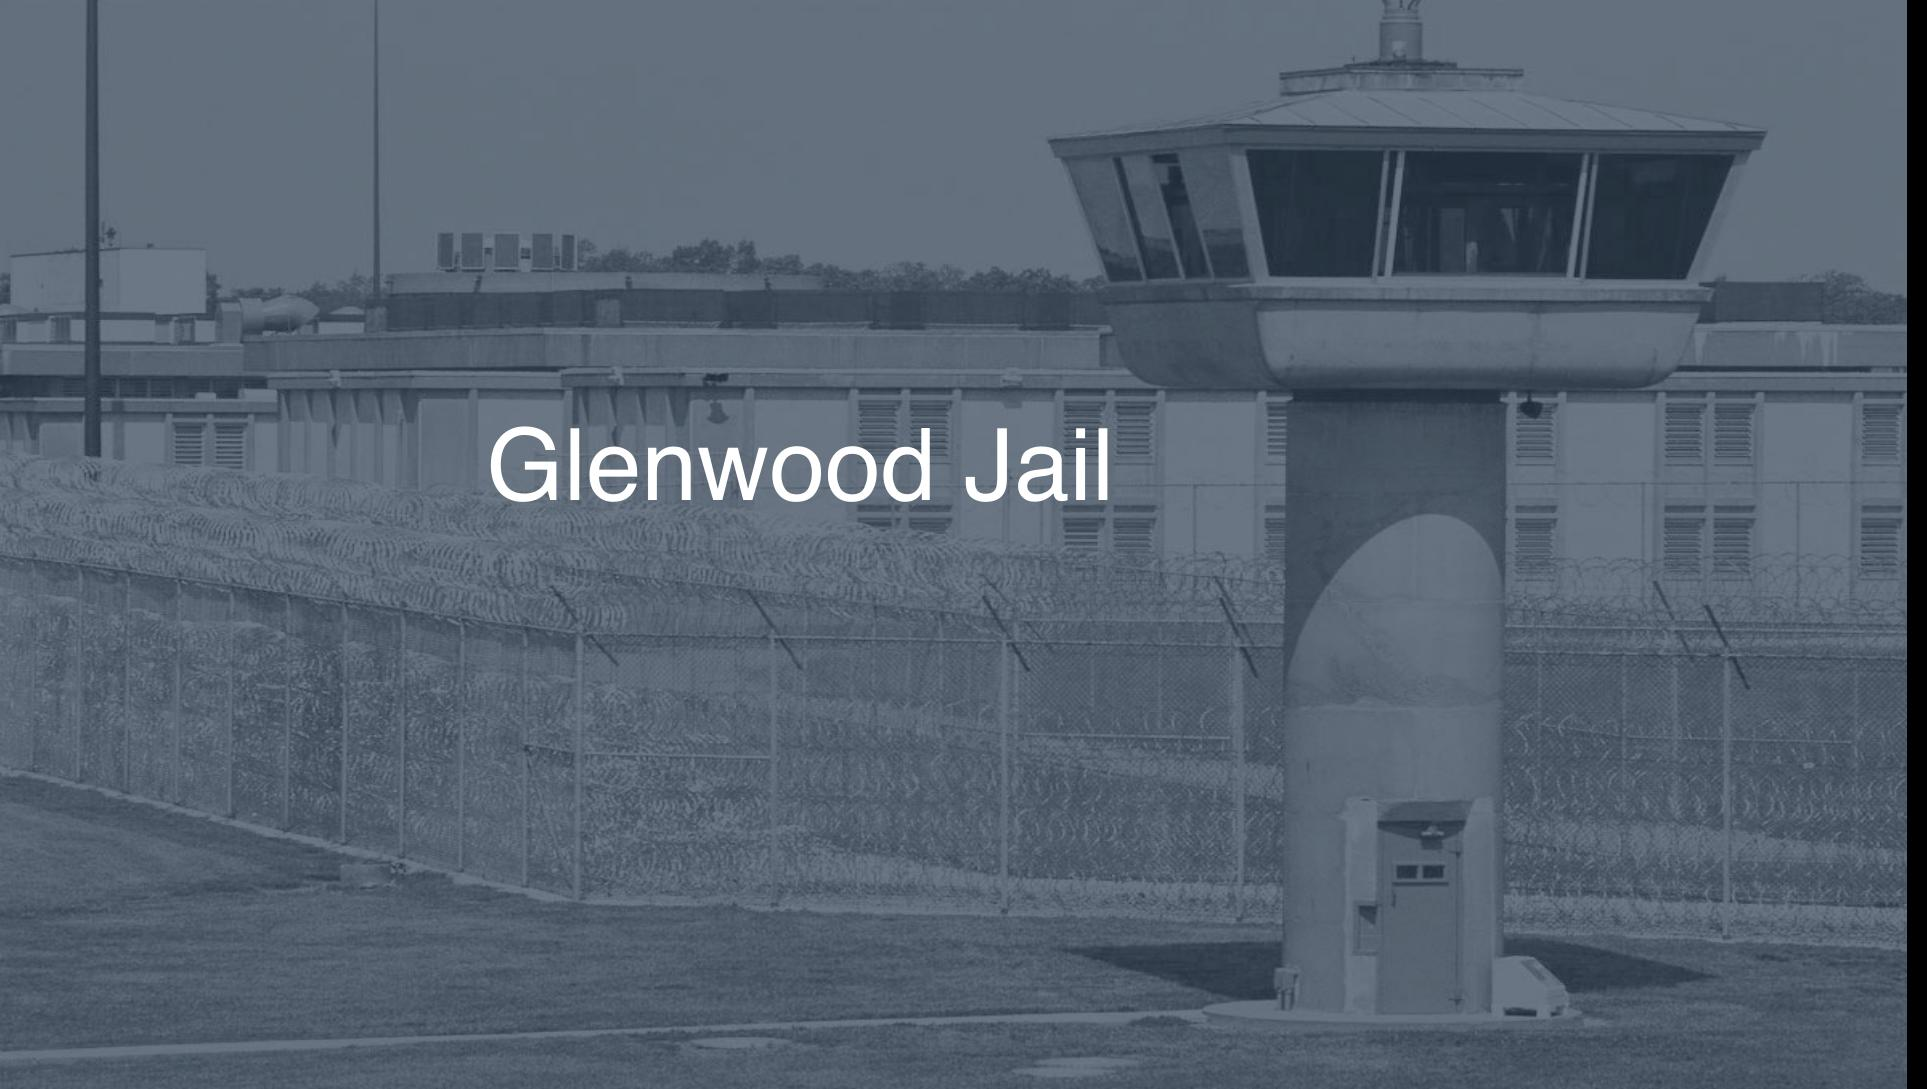 Glenwood Jail | Pigeonly - Inmate Search, Locate & Connect